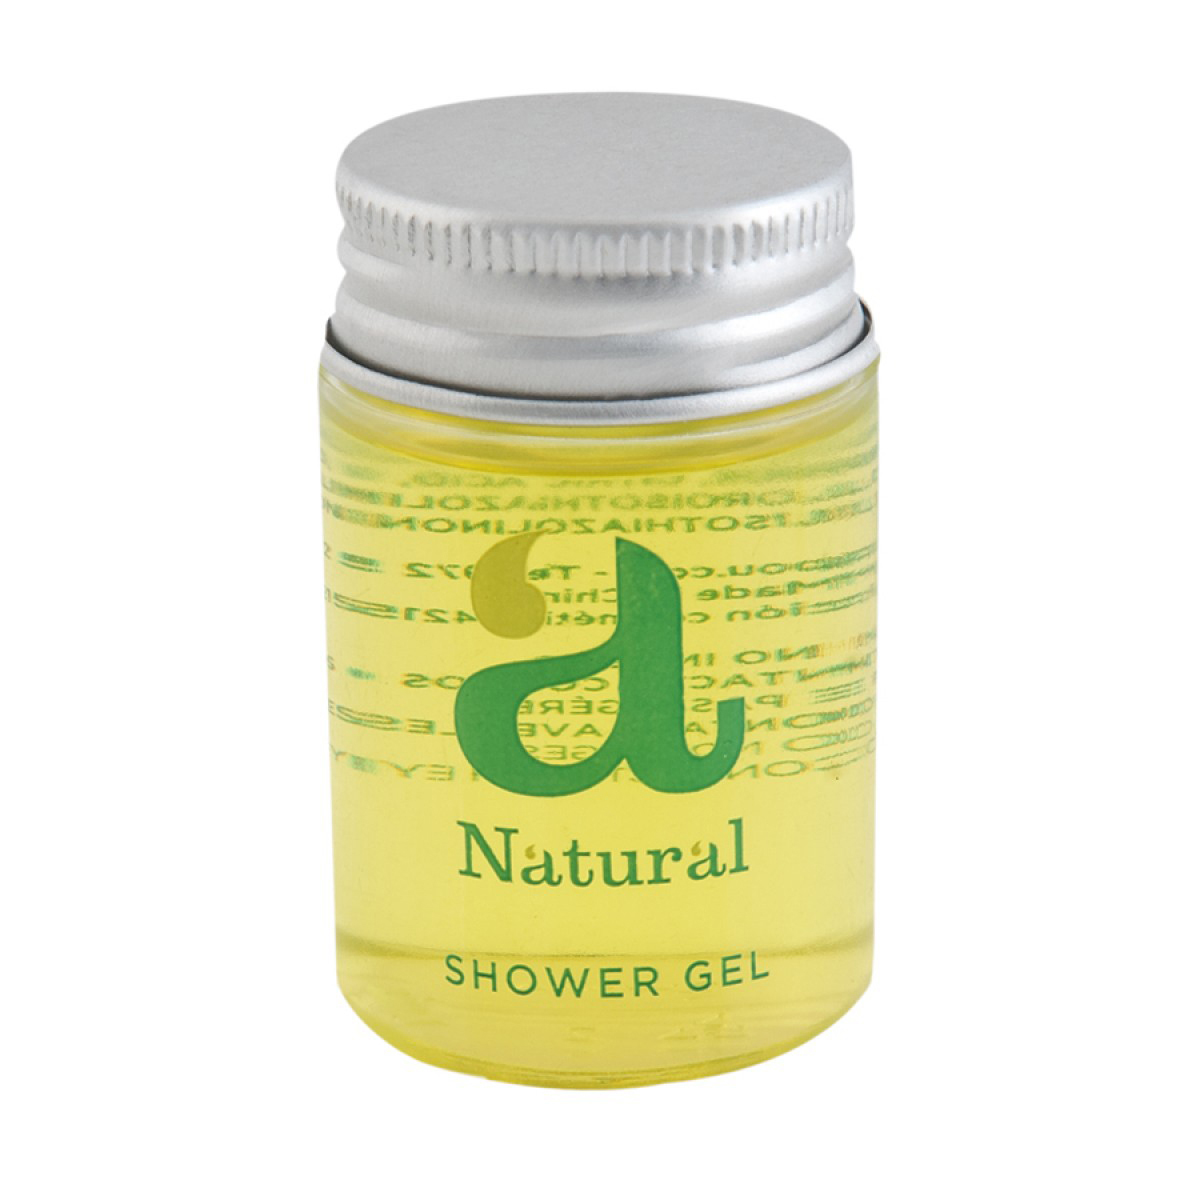 Botella Gel Ducha Natural 30ml